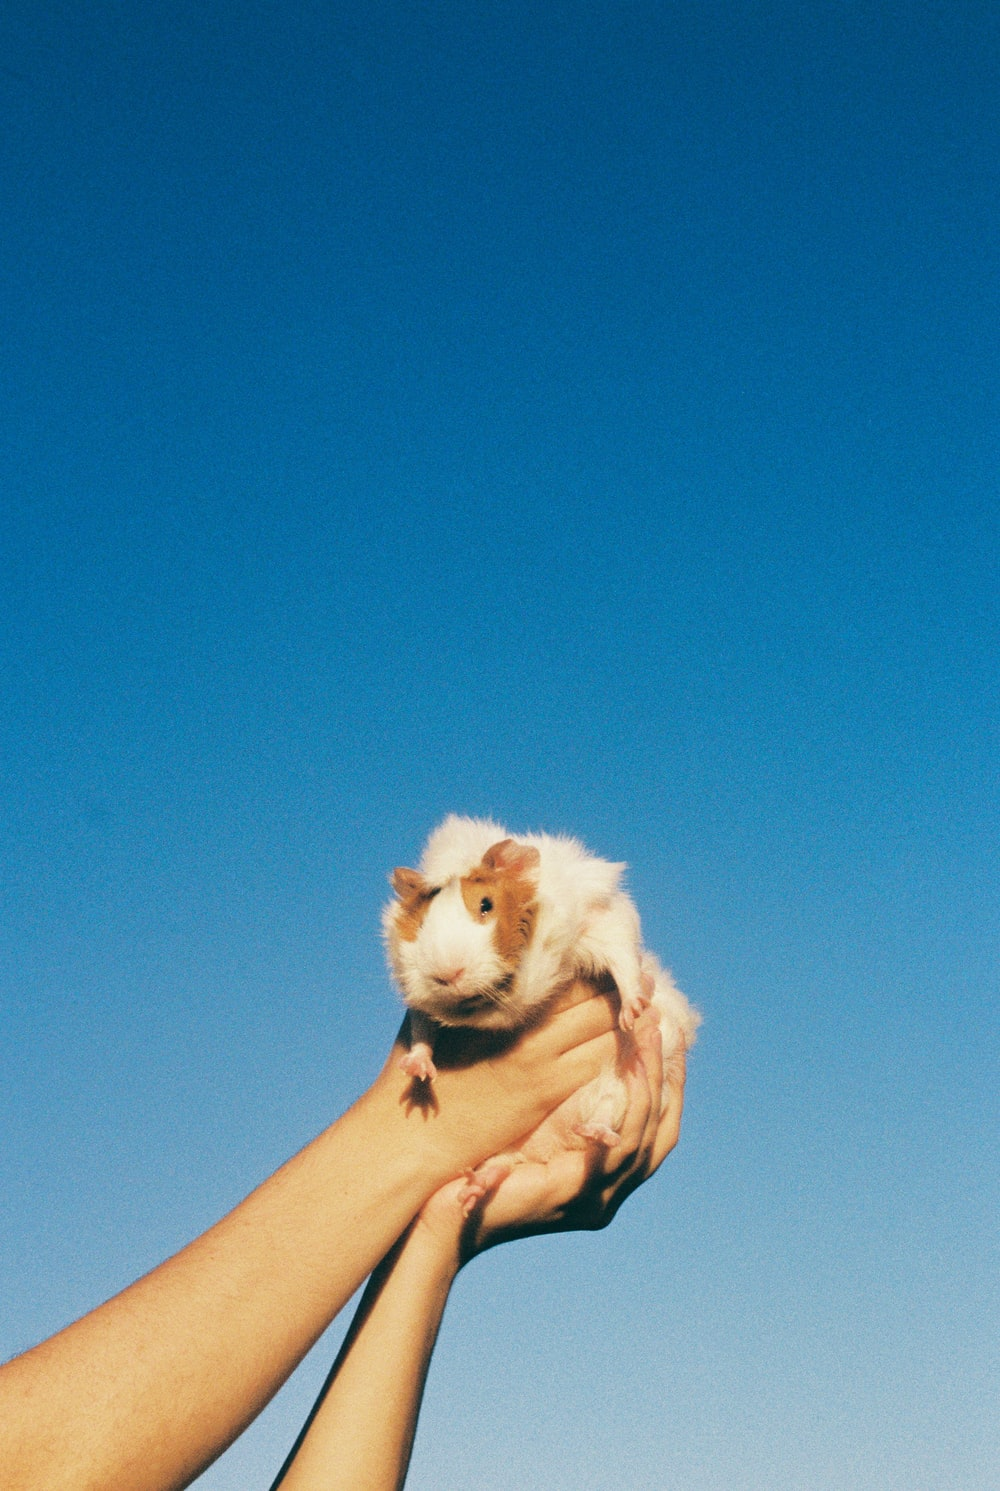 person holding white long coated small dog